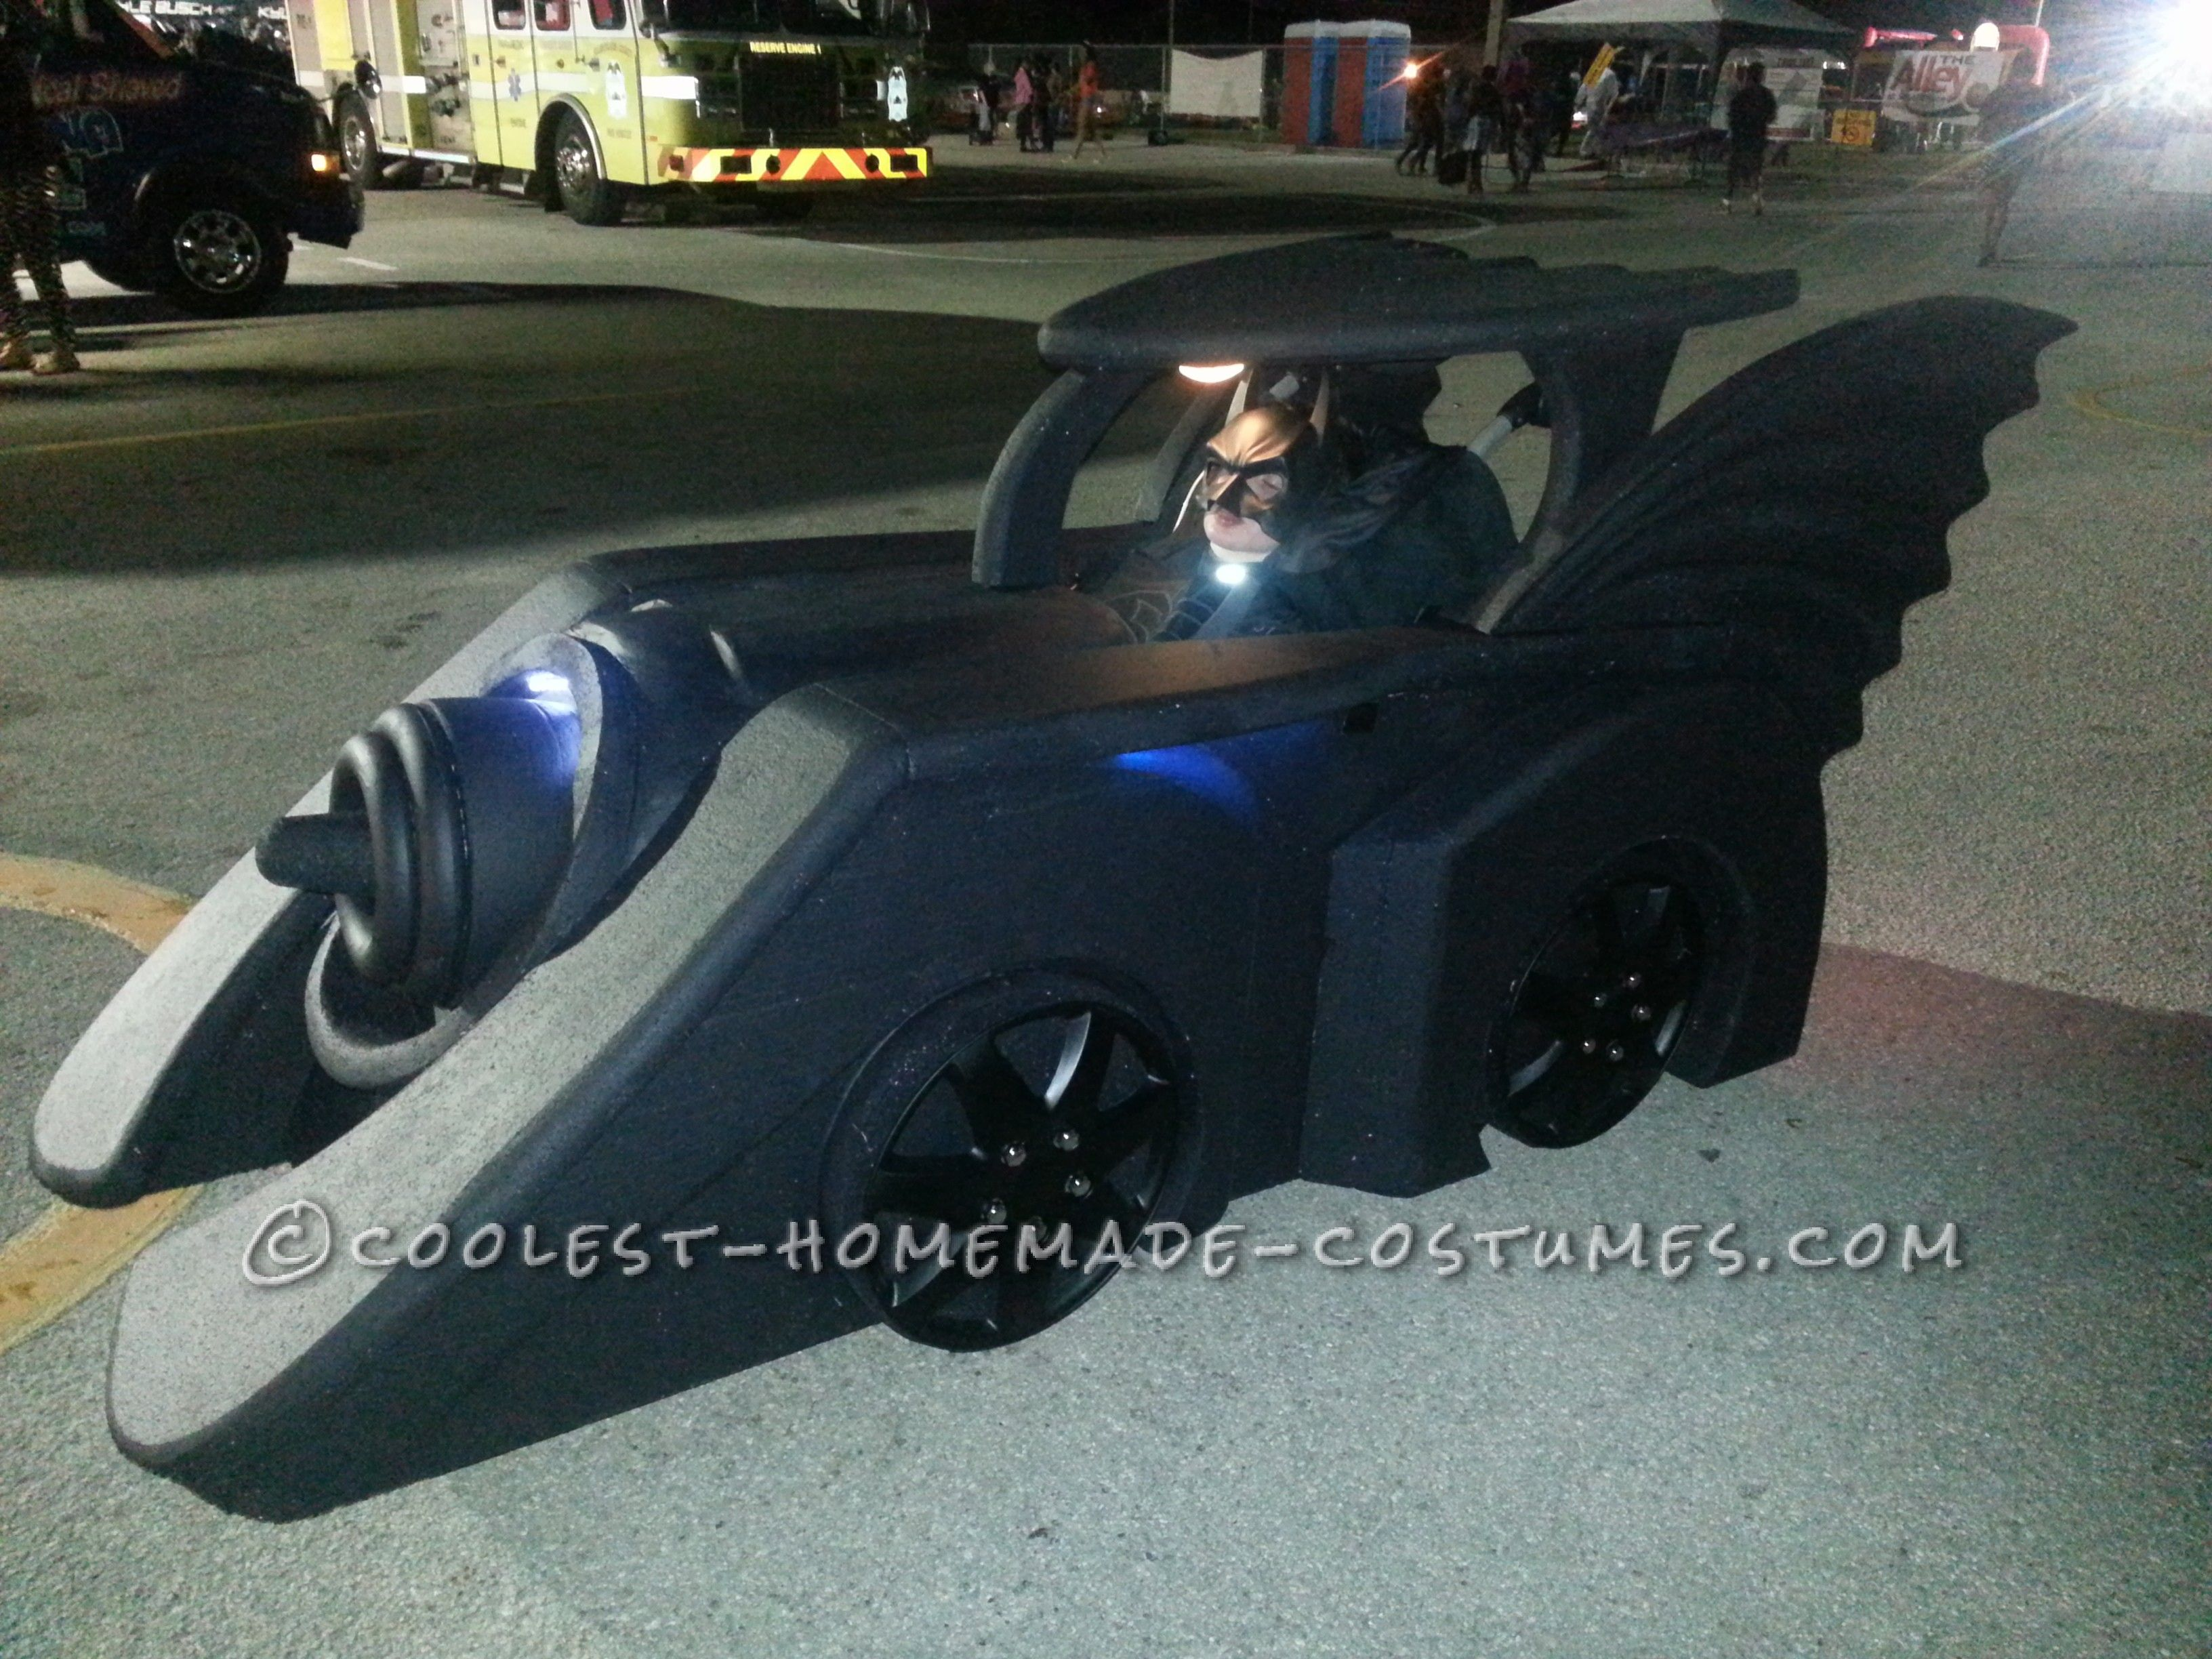 2014 halloween costume contest runner up batmobile wheelchair costume submitted by karen from tampa - Halloween Tampa Fl